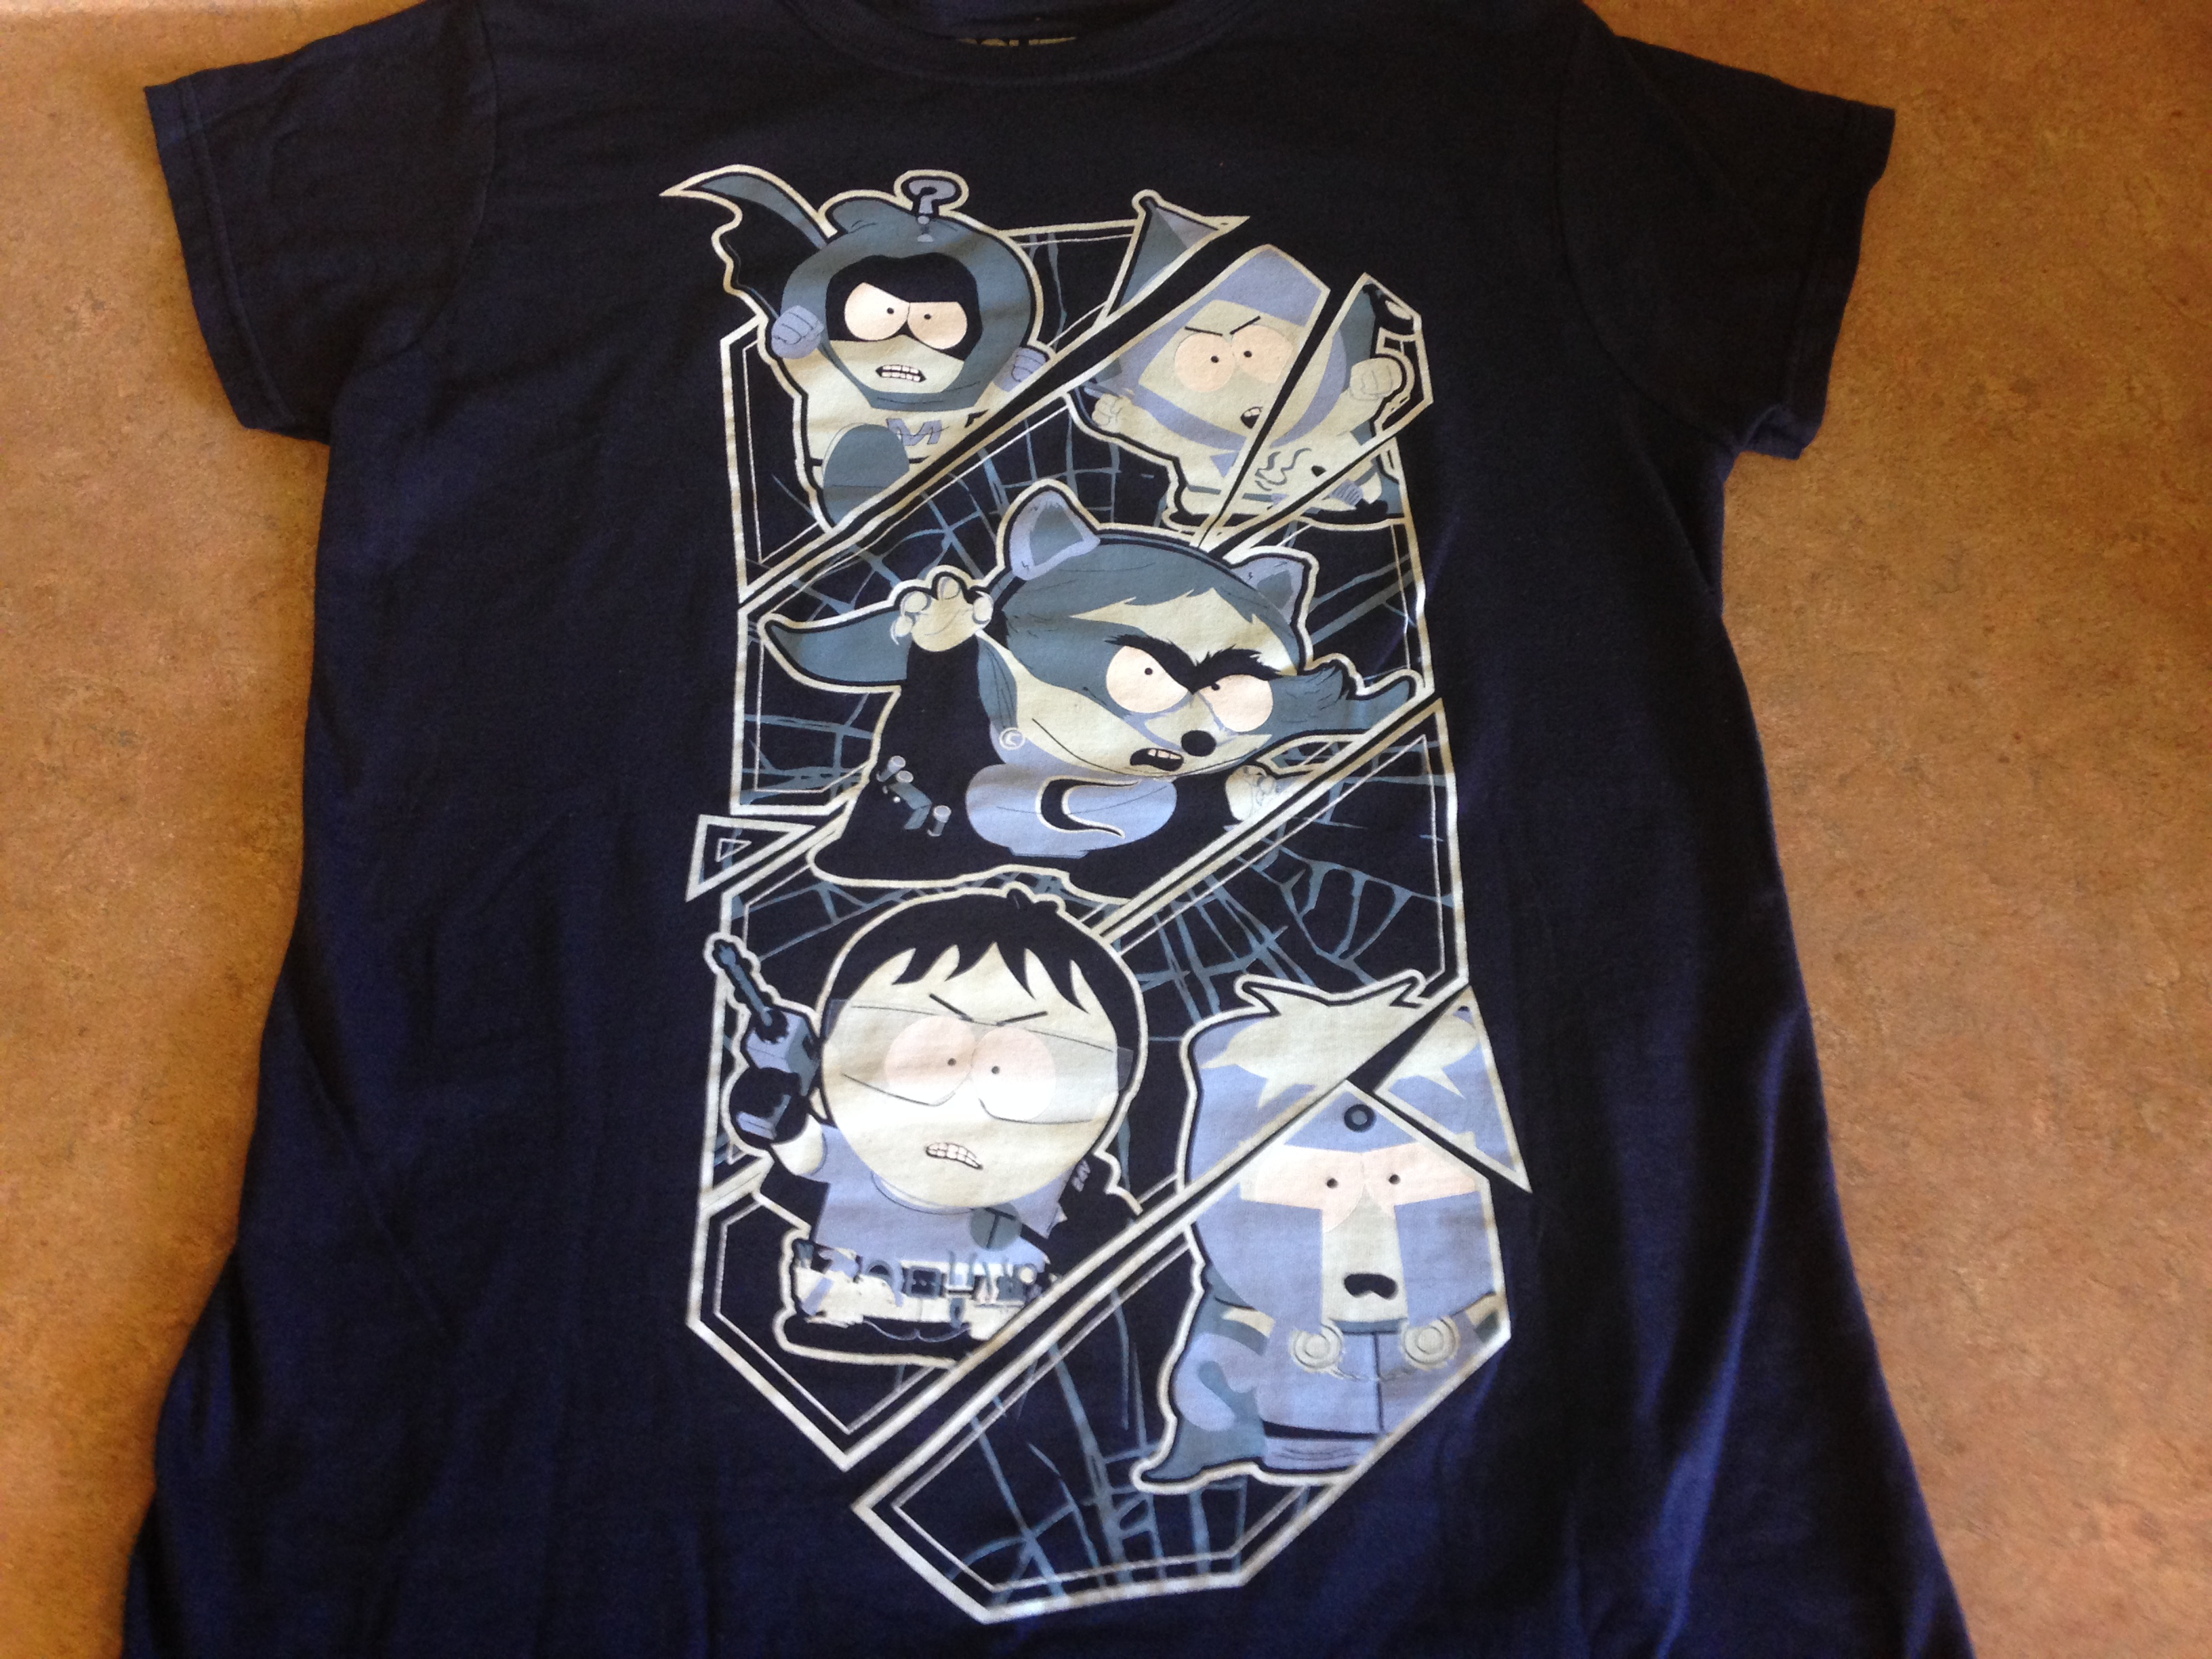 South Park the Fractured but Whole Tshirt, Geek Fuel April 2017